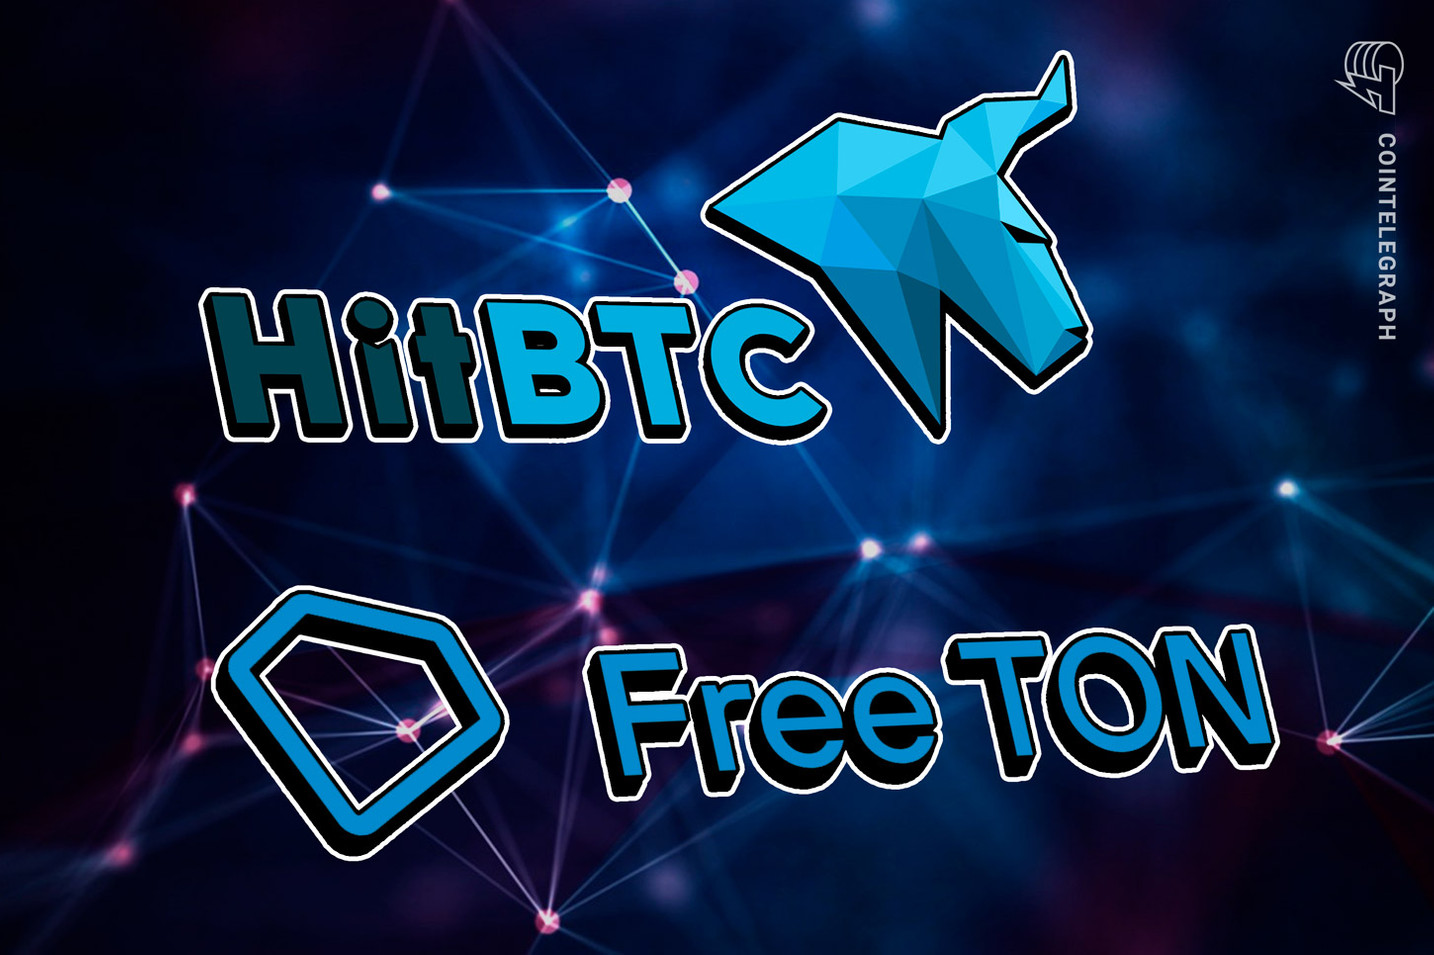 HitBTC is the latest to list Free TON's network token TON Crystal (TON)